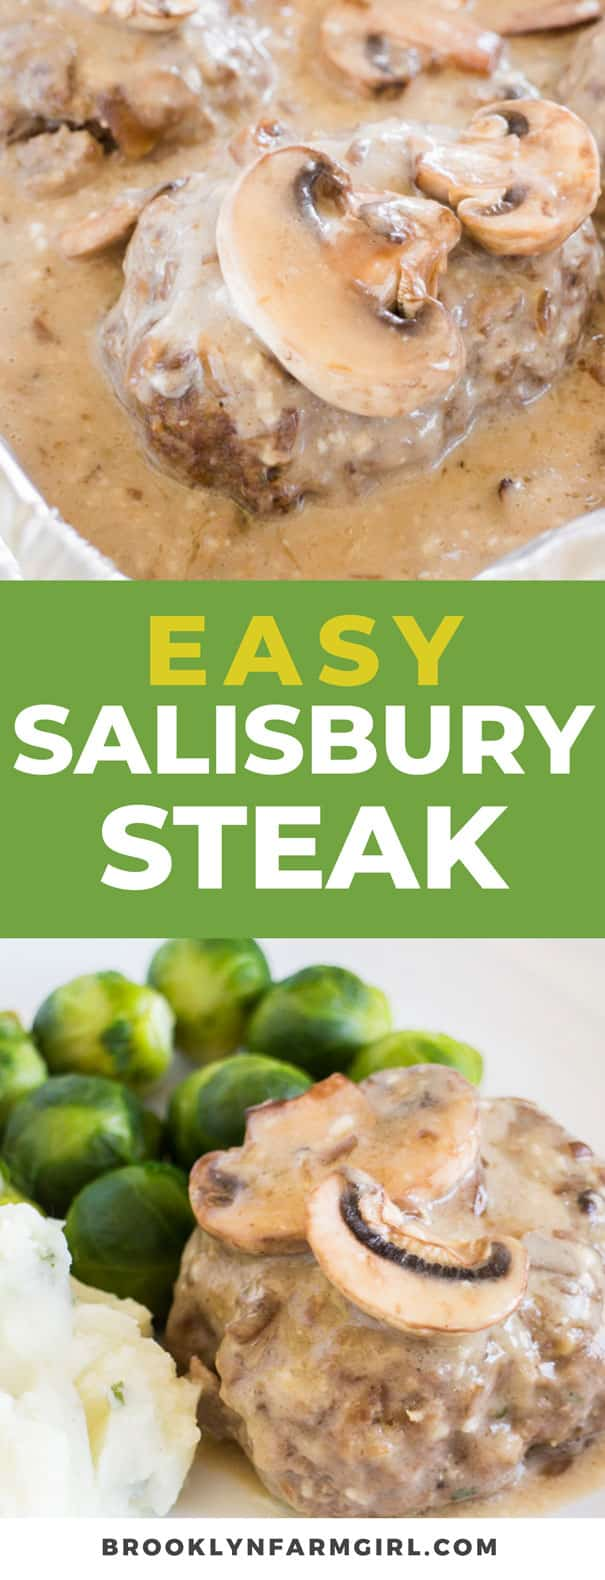 Easy Salisbury Steak recipe that is baked in the oven. This simple dinner uses cans of french onion soup and cream of mushroom soup, along with ground beef and bread crumbs. Includes how to freeze Salisbury steak instructions if you want to make this ahead of time for a freezer meal.